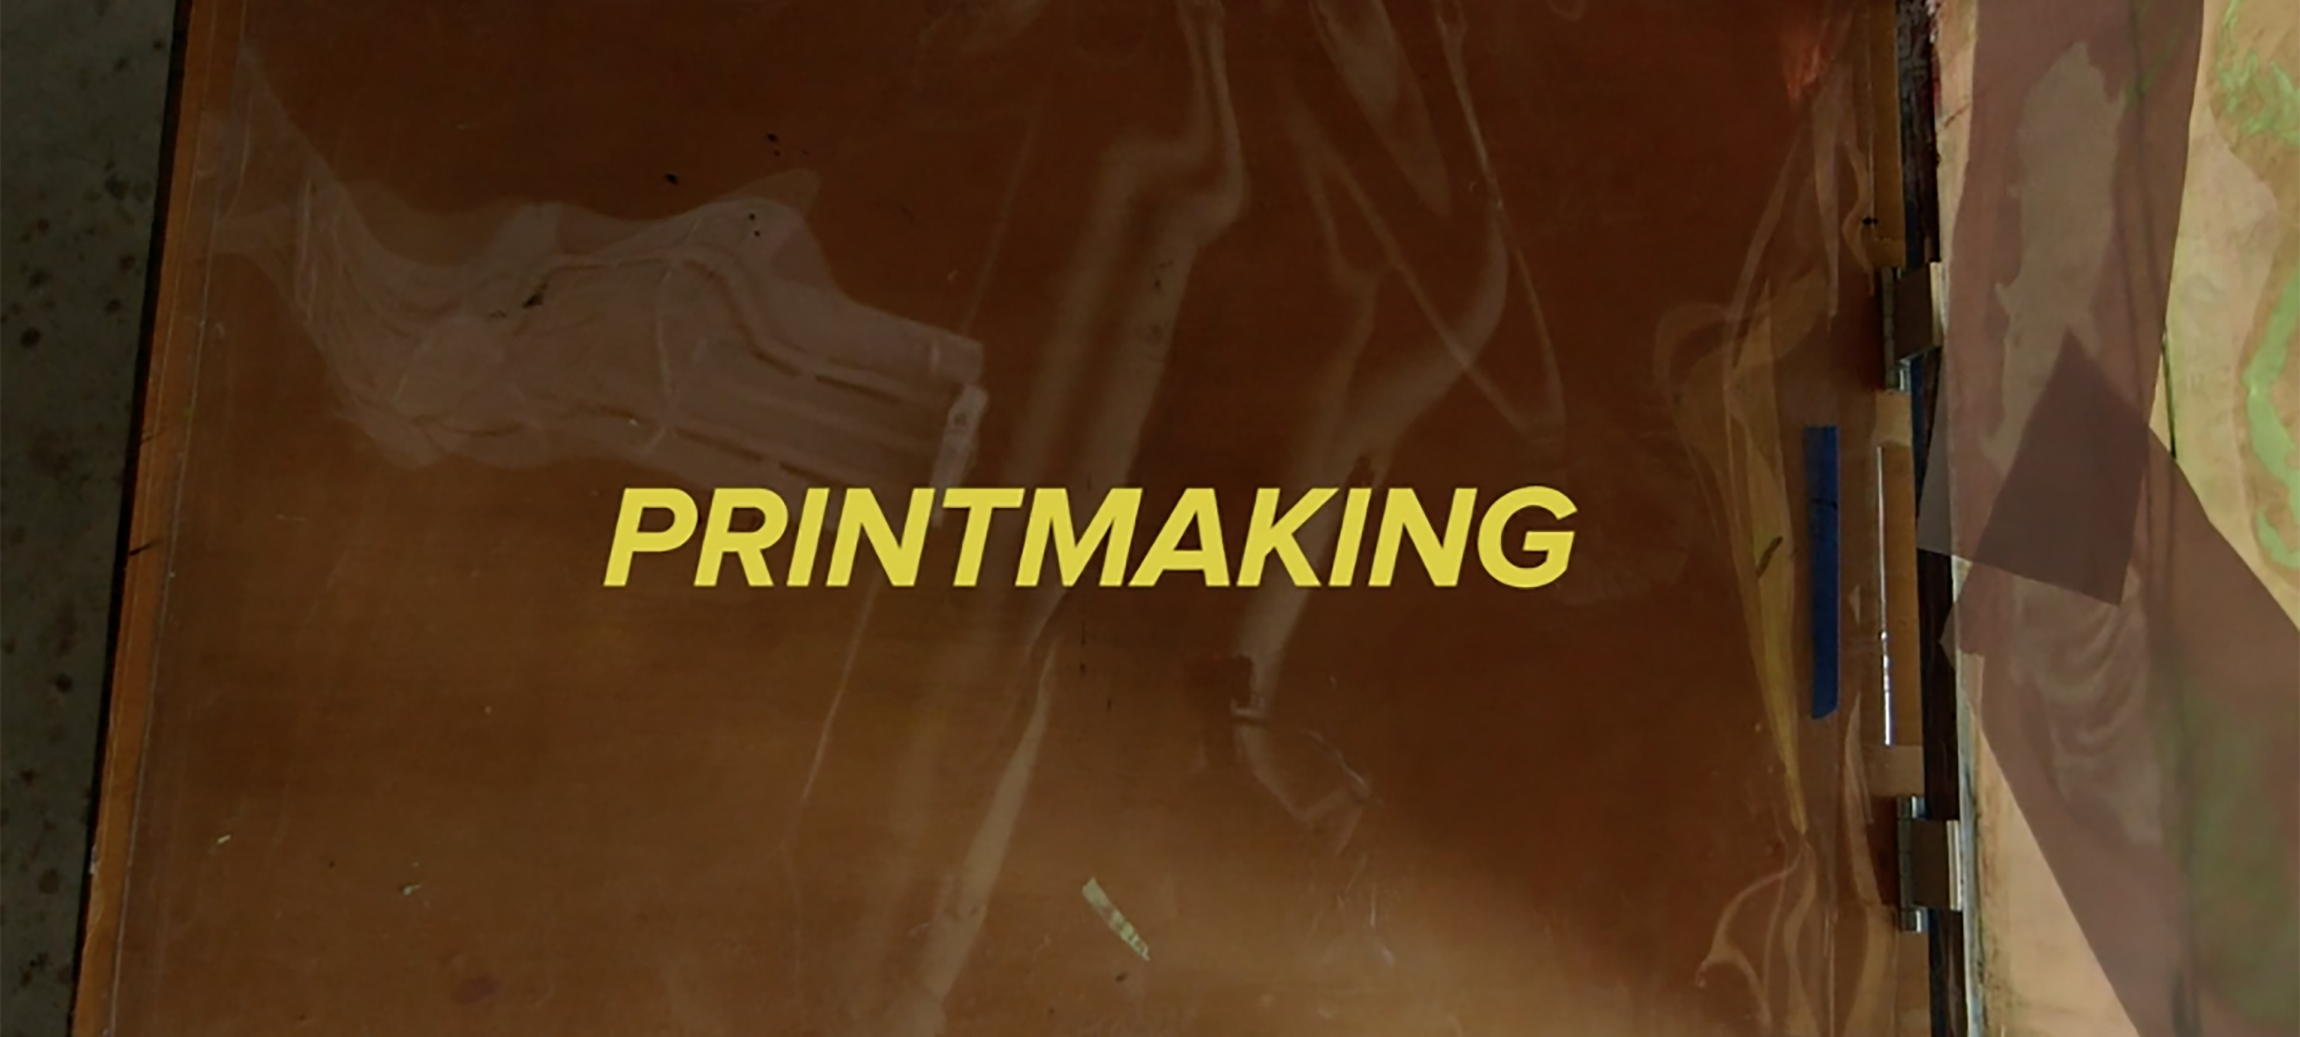 Video: Printmaking at MECA image